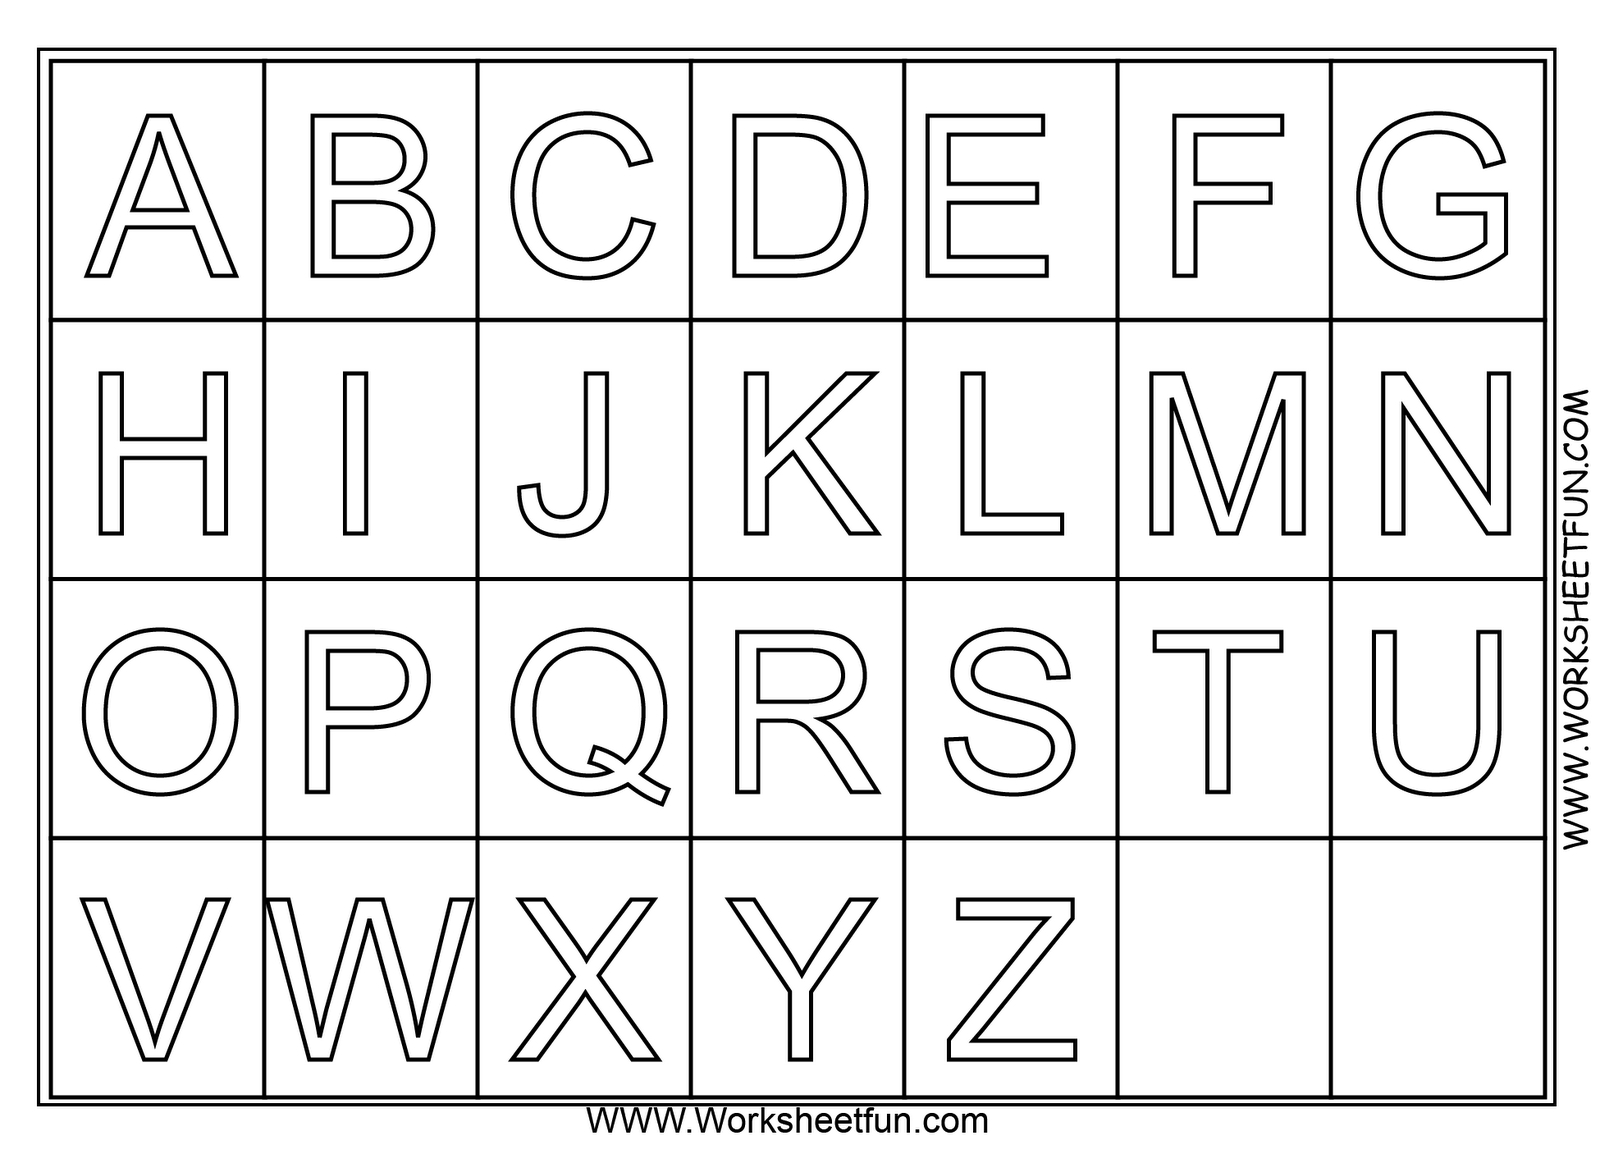 A Z Alphabet Coloring Pages Download And Print For Free throughout Alphabet Worksheets A To Z Activity Pages